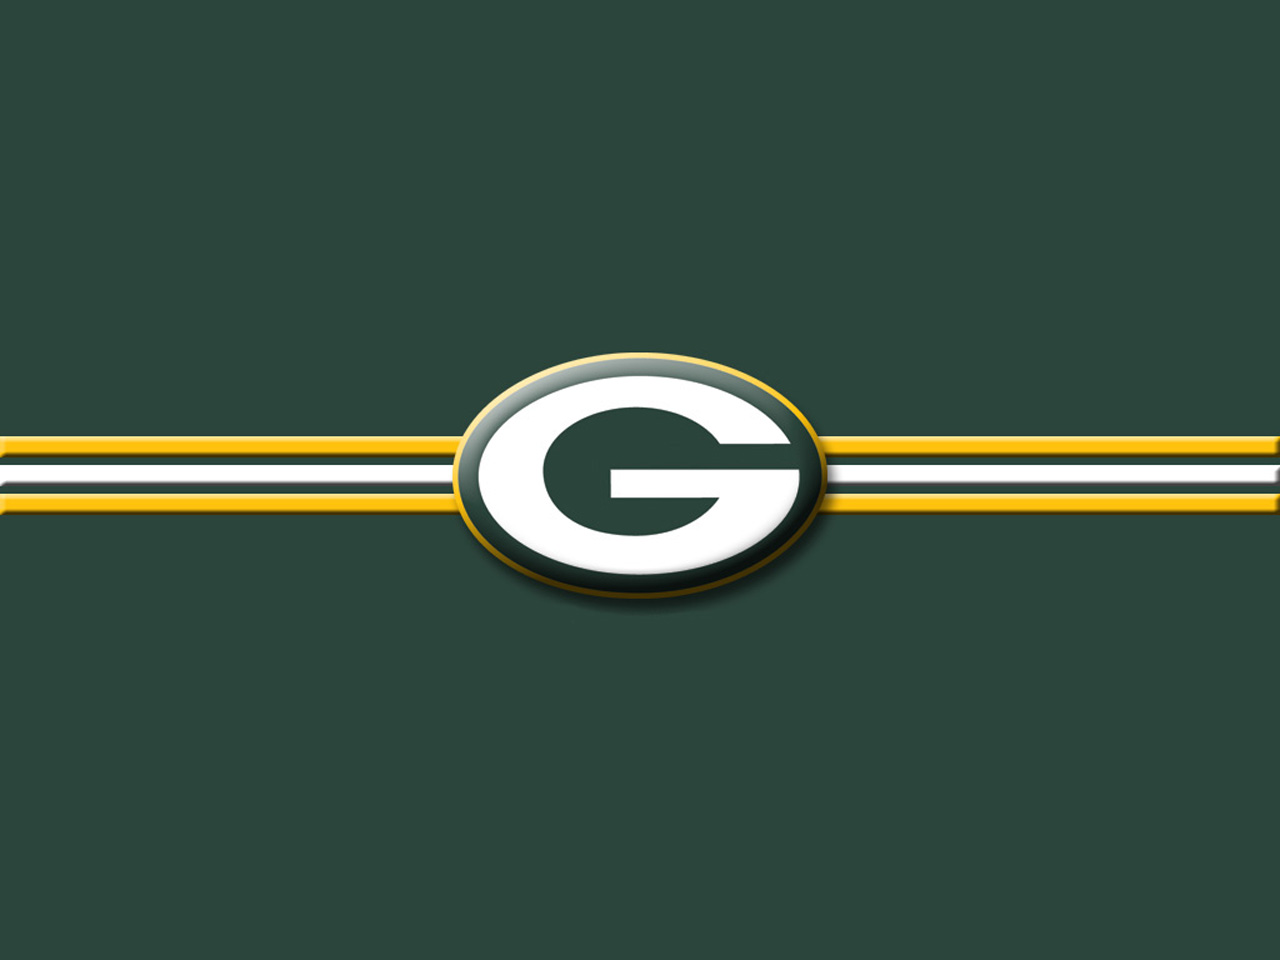 Green Bay Packer Wallpaper: Football Wallpapers: Green Bay Packers Wallpaper